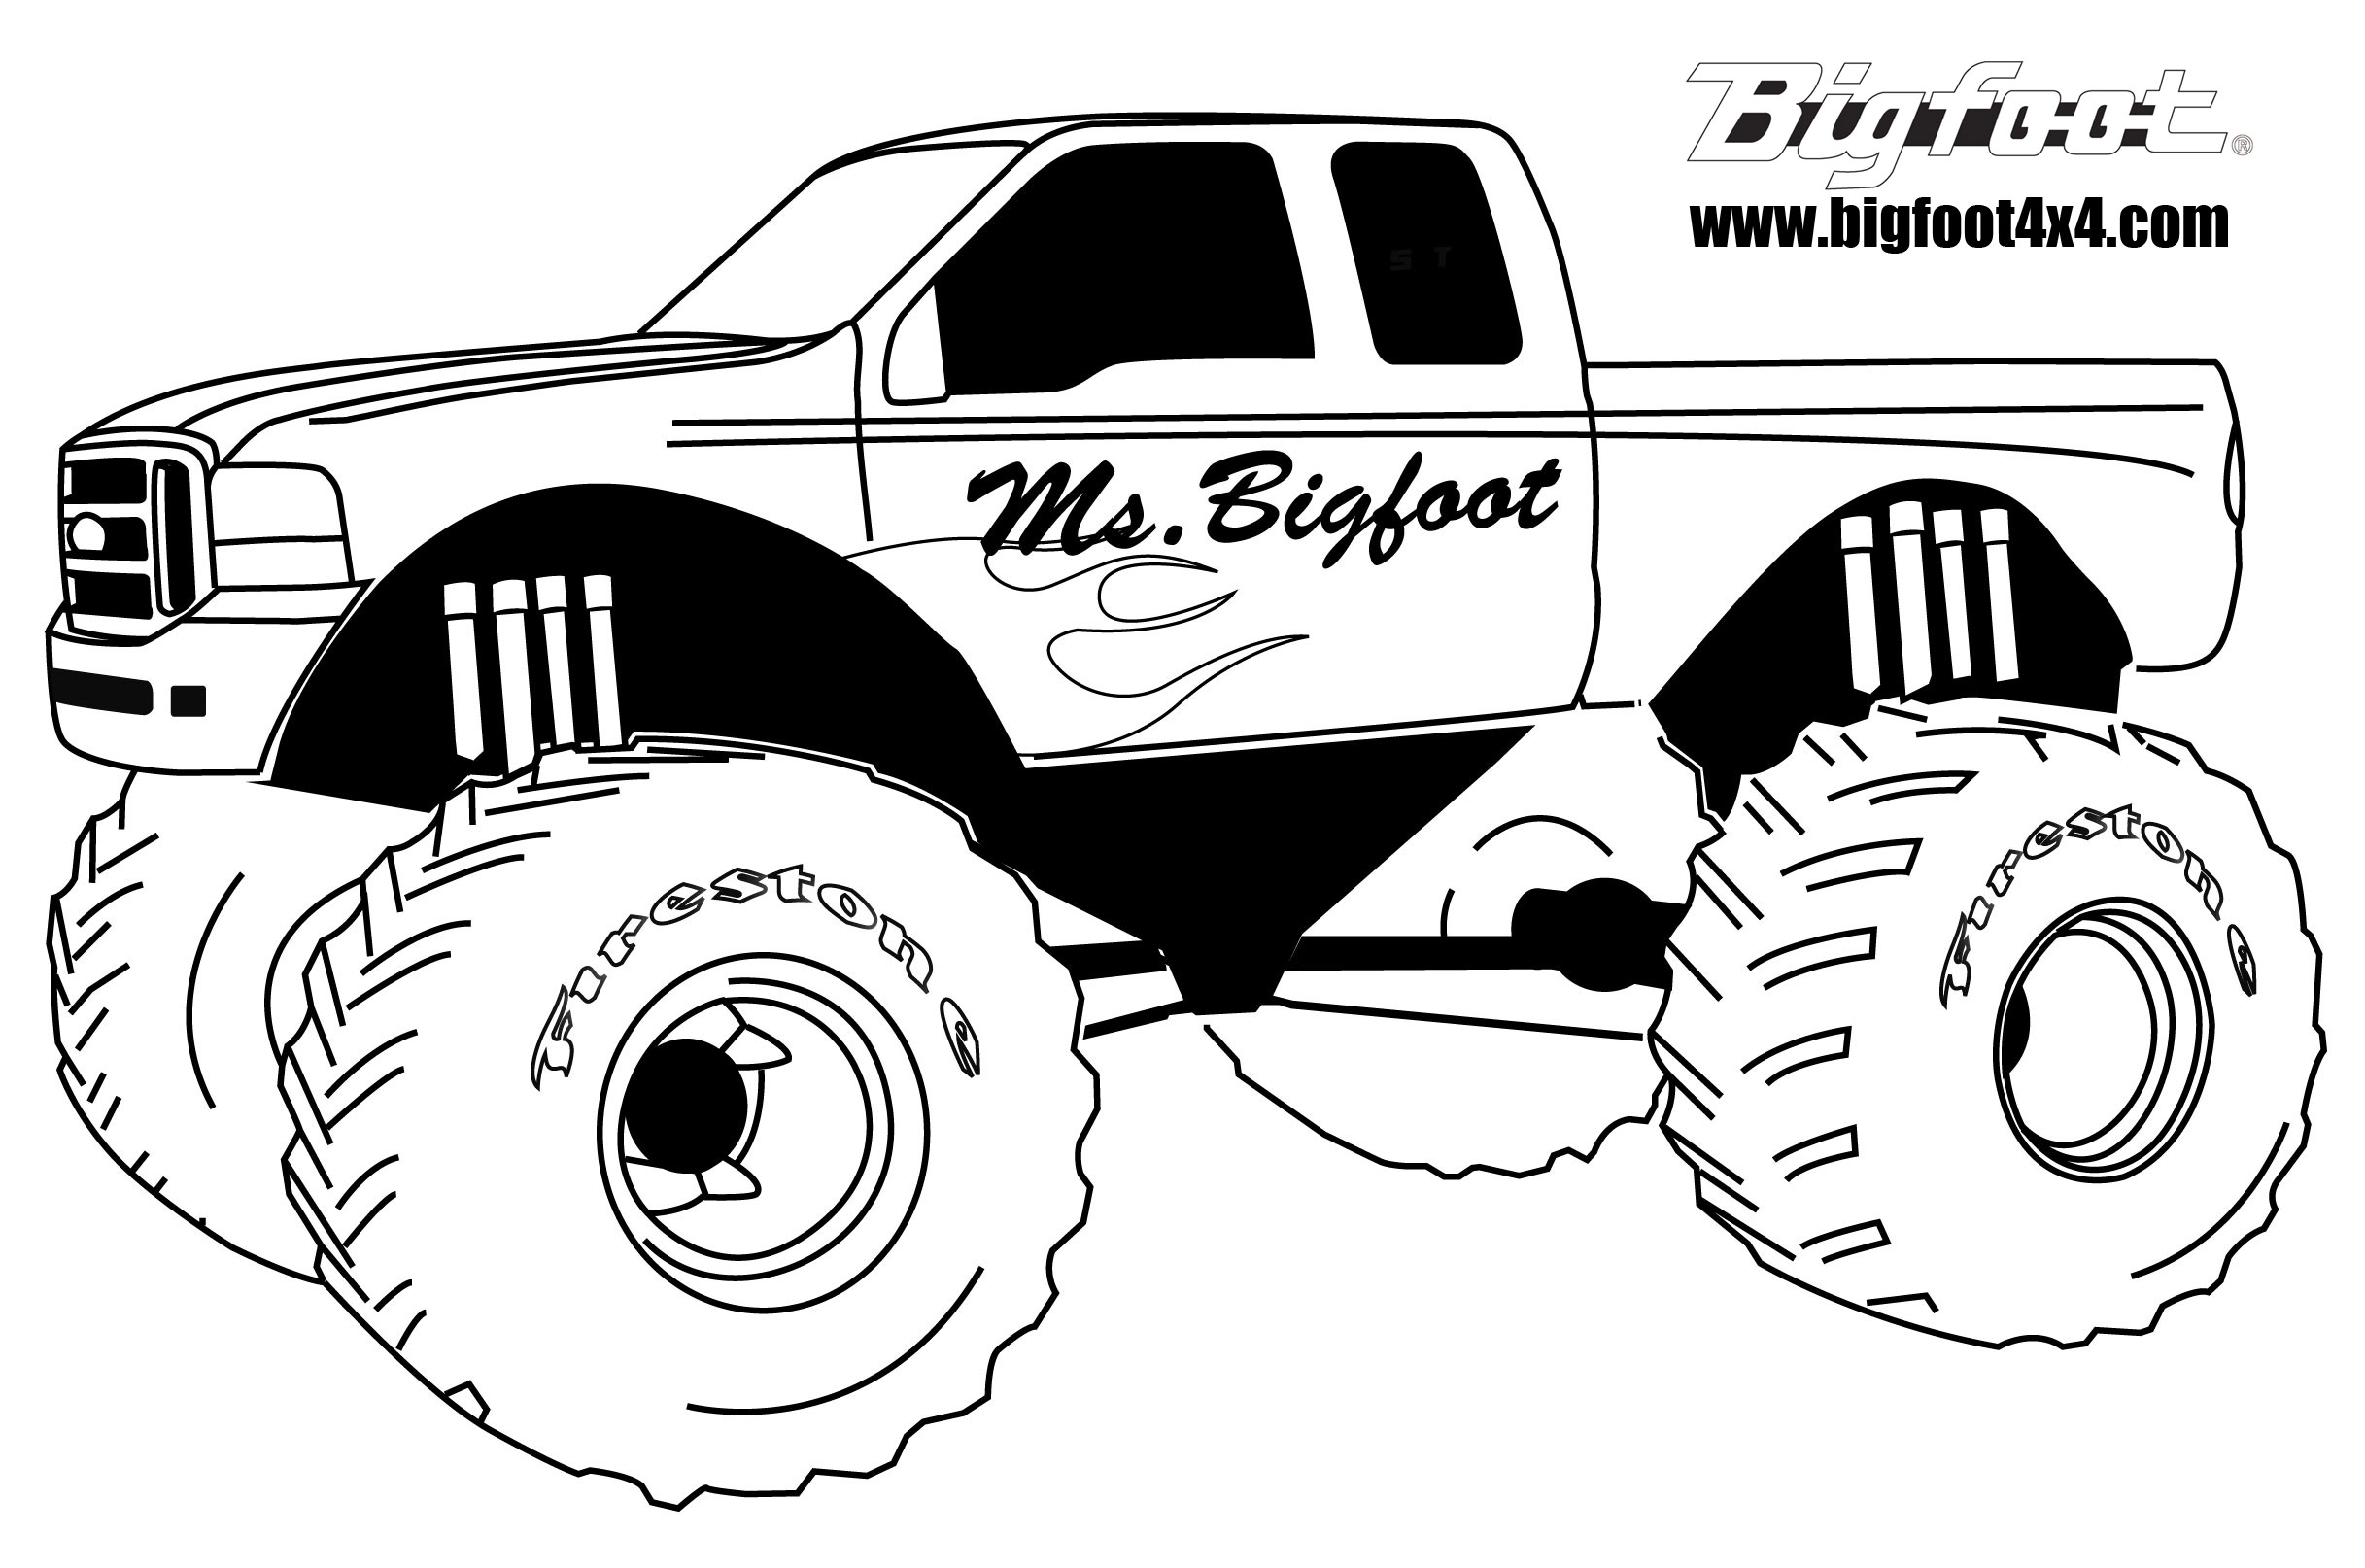 monster truck pictures to color monster truck max d coloring page for kids transportation color pictures truck monster to